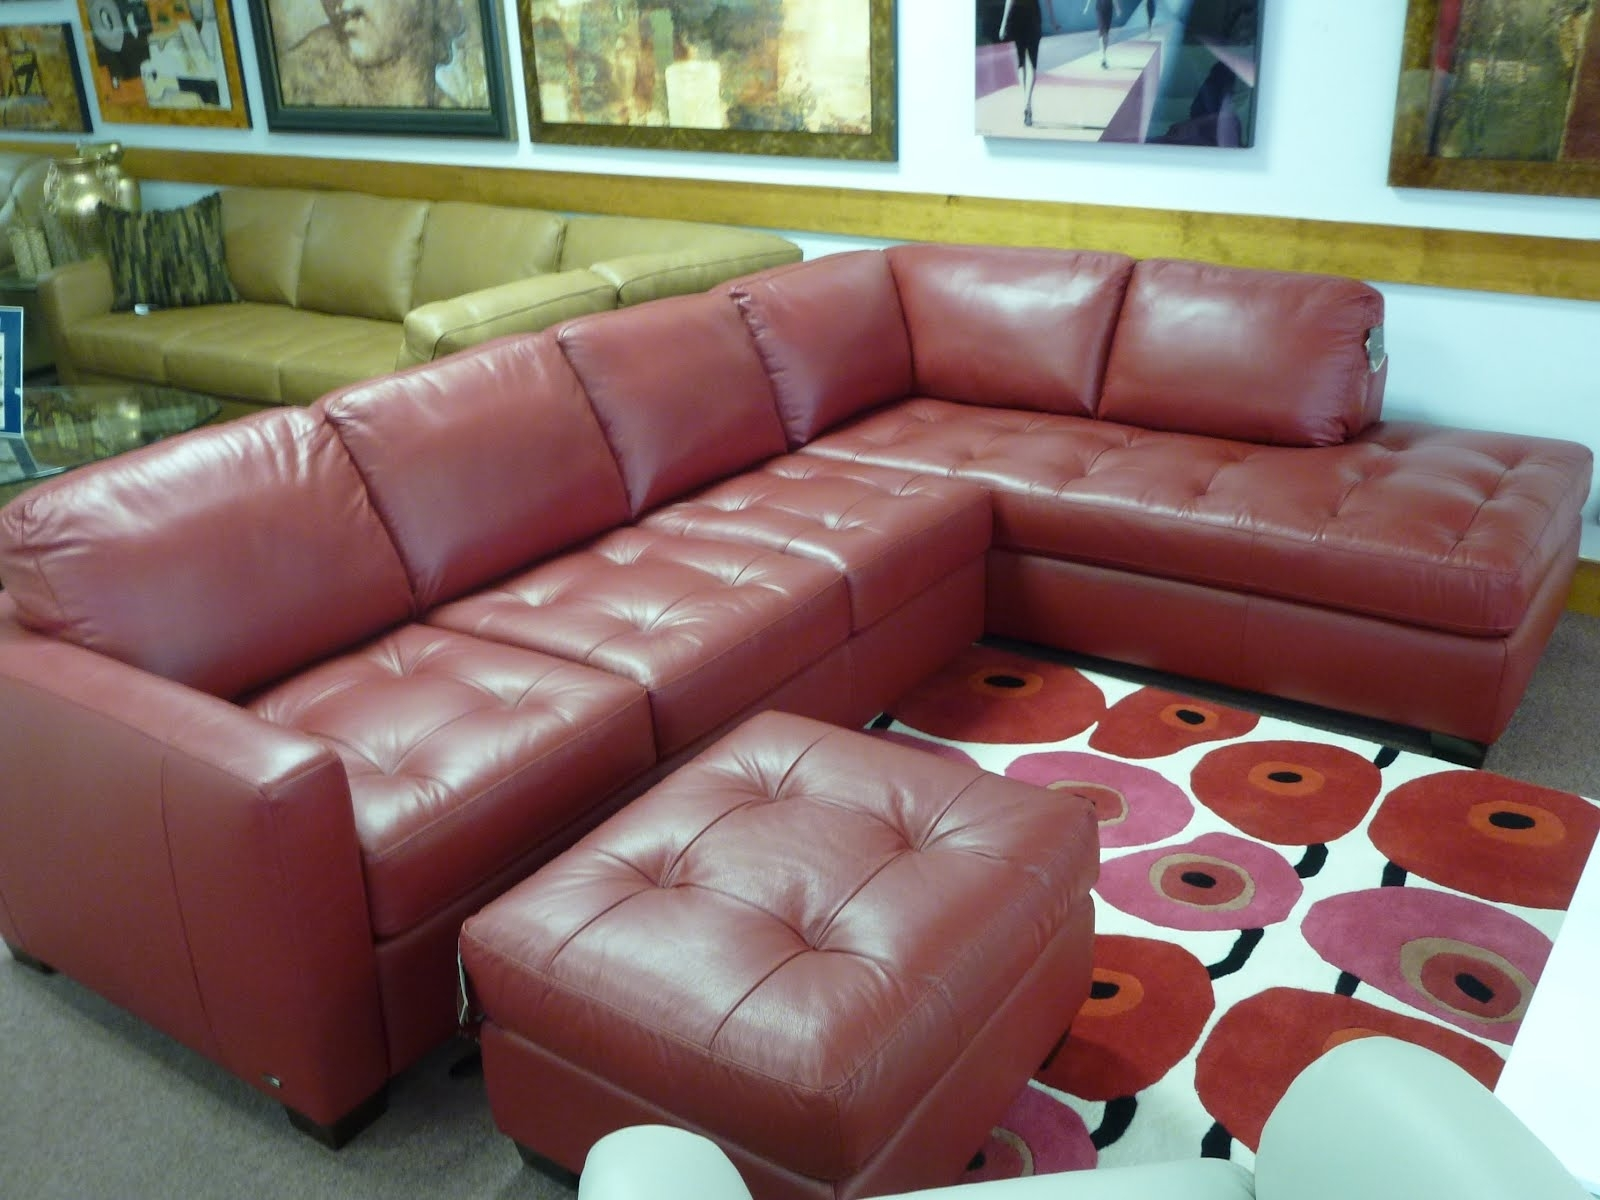 Red Leather Sectional Sofa | Red Leather Sectional Sofa With Chaise Inside Red Leather Sectional Sofas With Ottoman (Image 8 of 10)